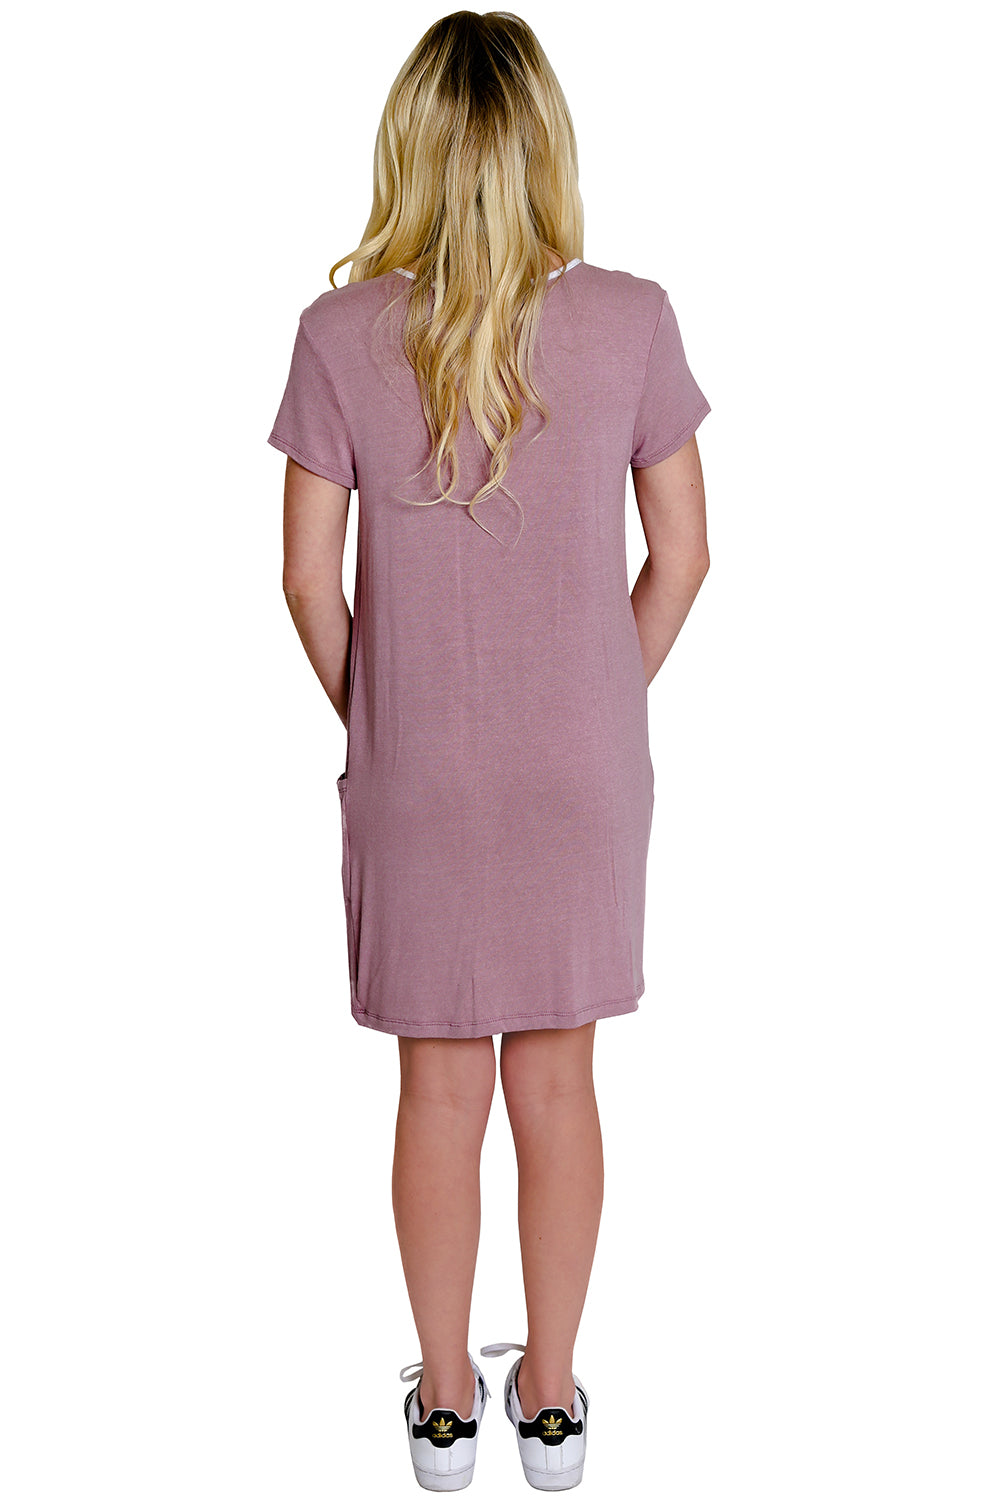 Blush Tee Shirt Dress